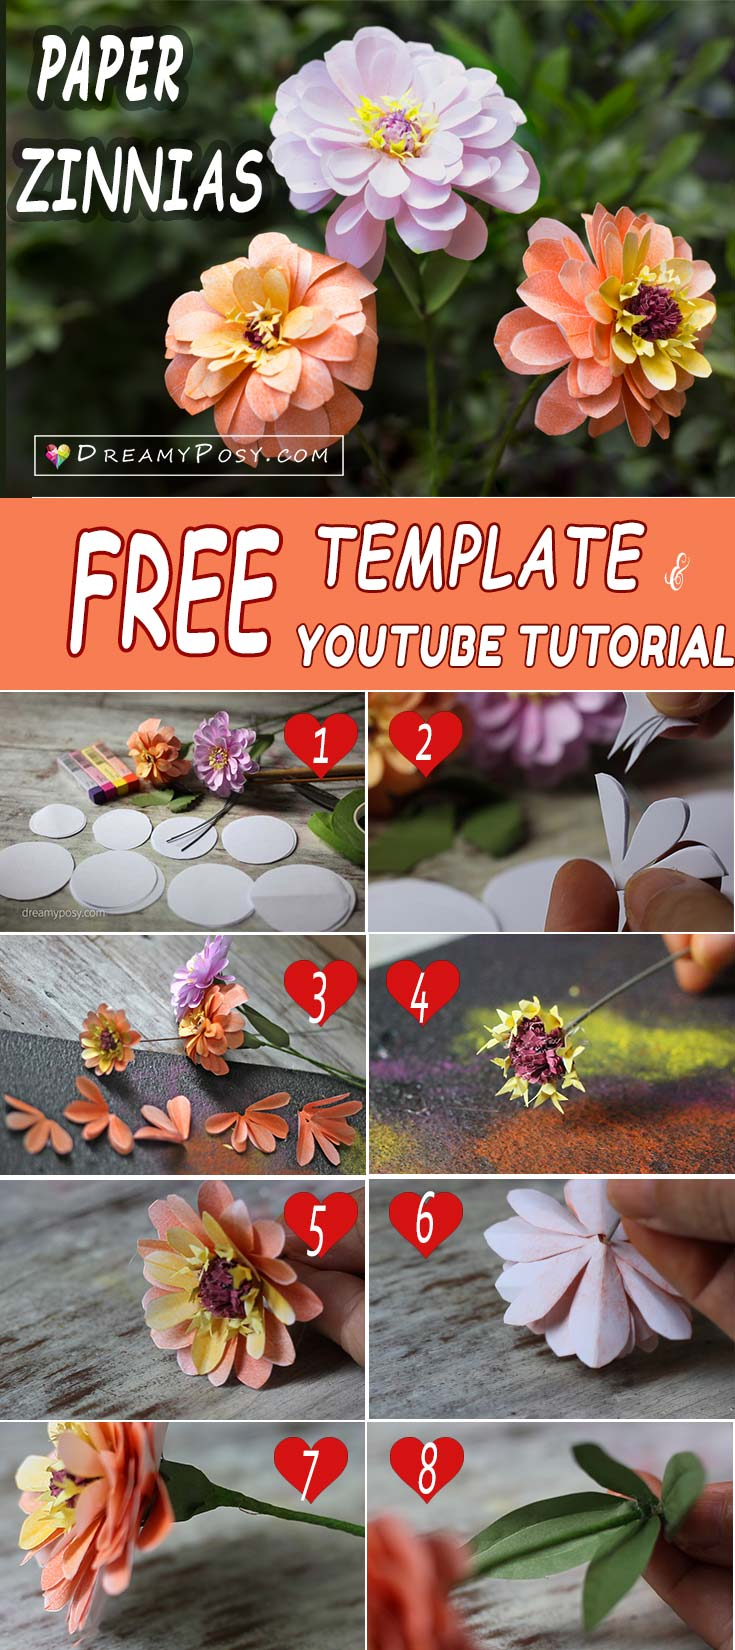 This is free template and tutorial to make paper Zinnias flower